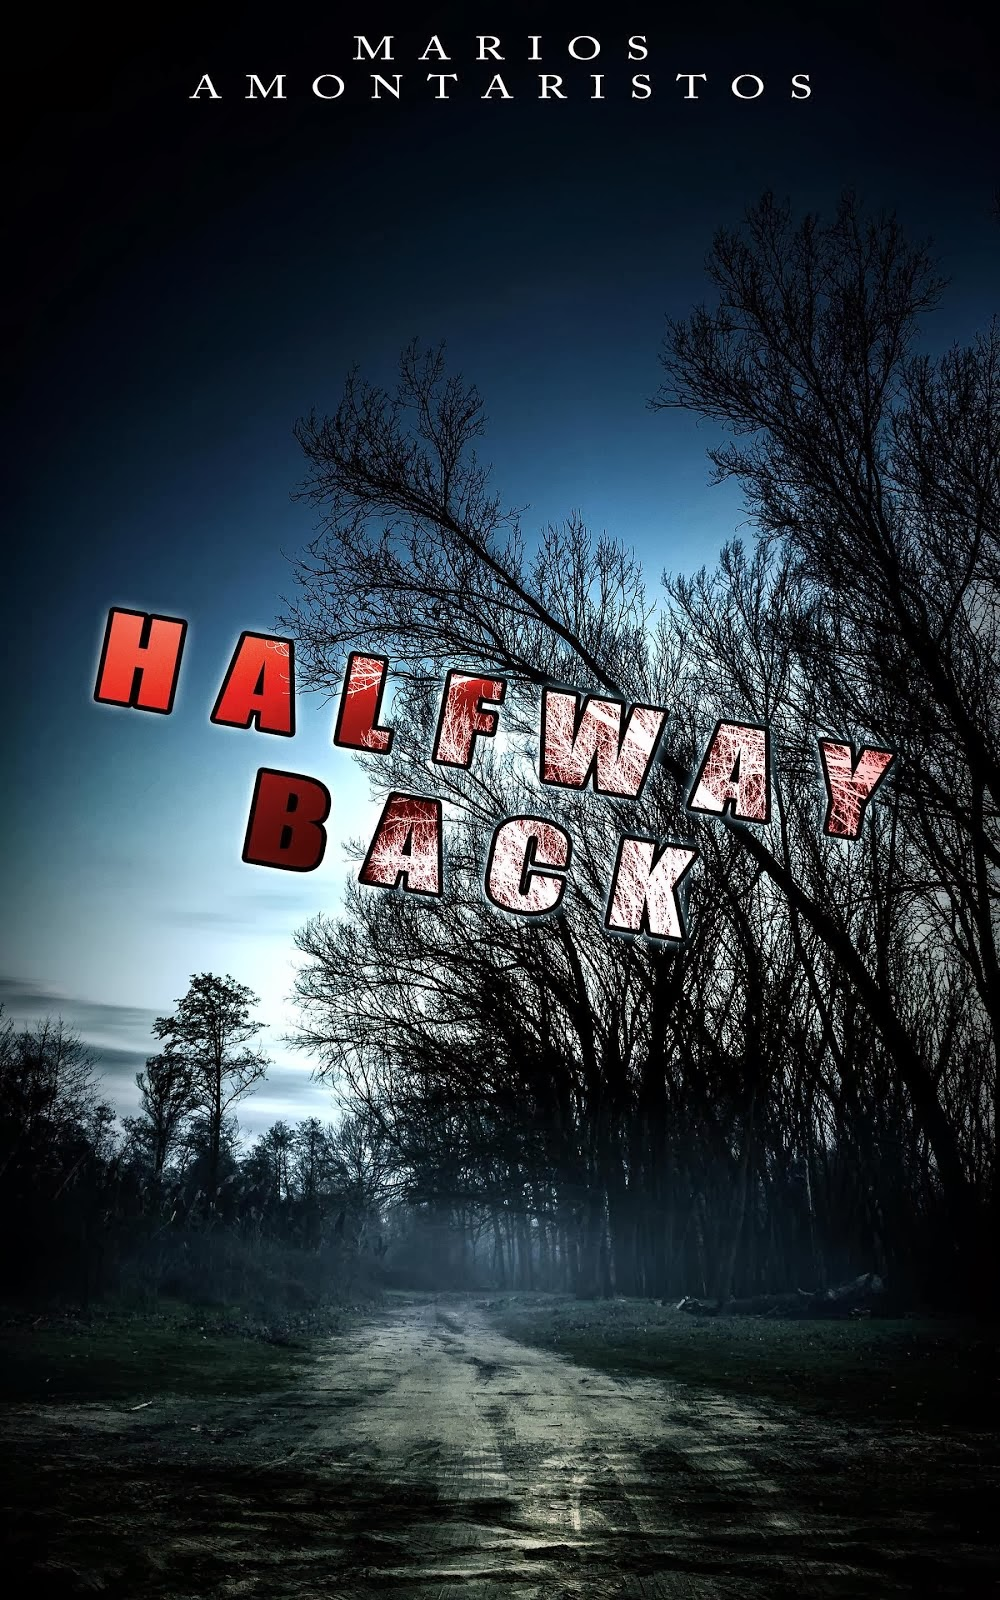 Halfway Back - The cover